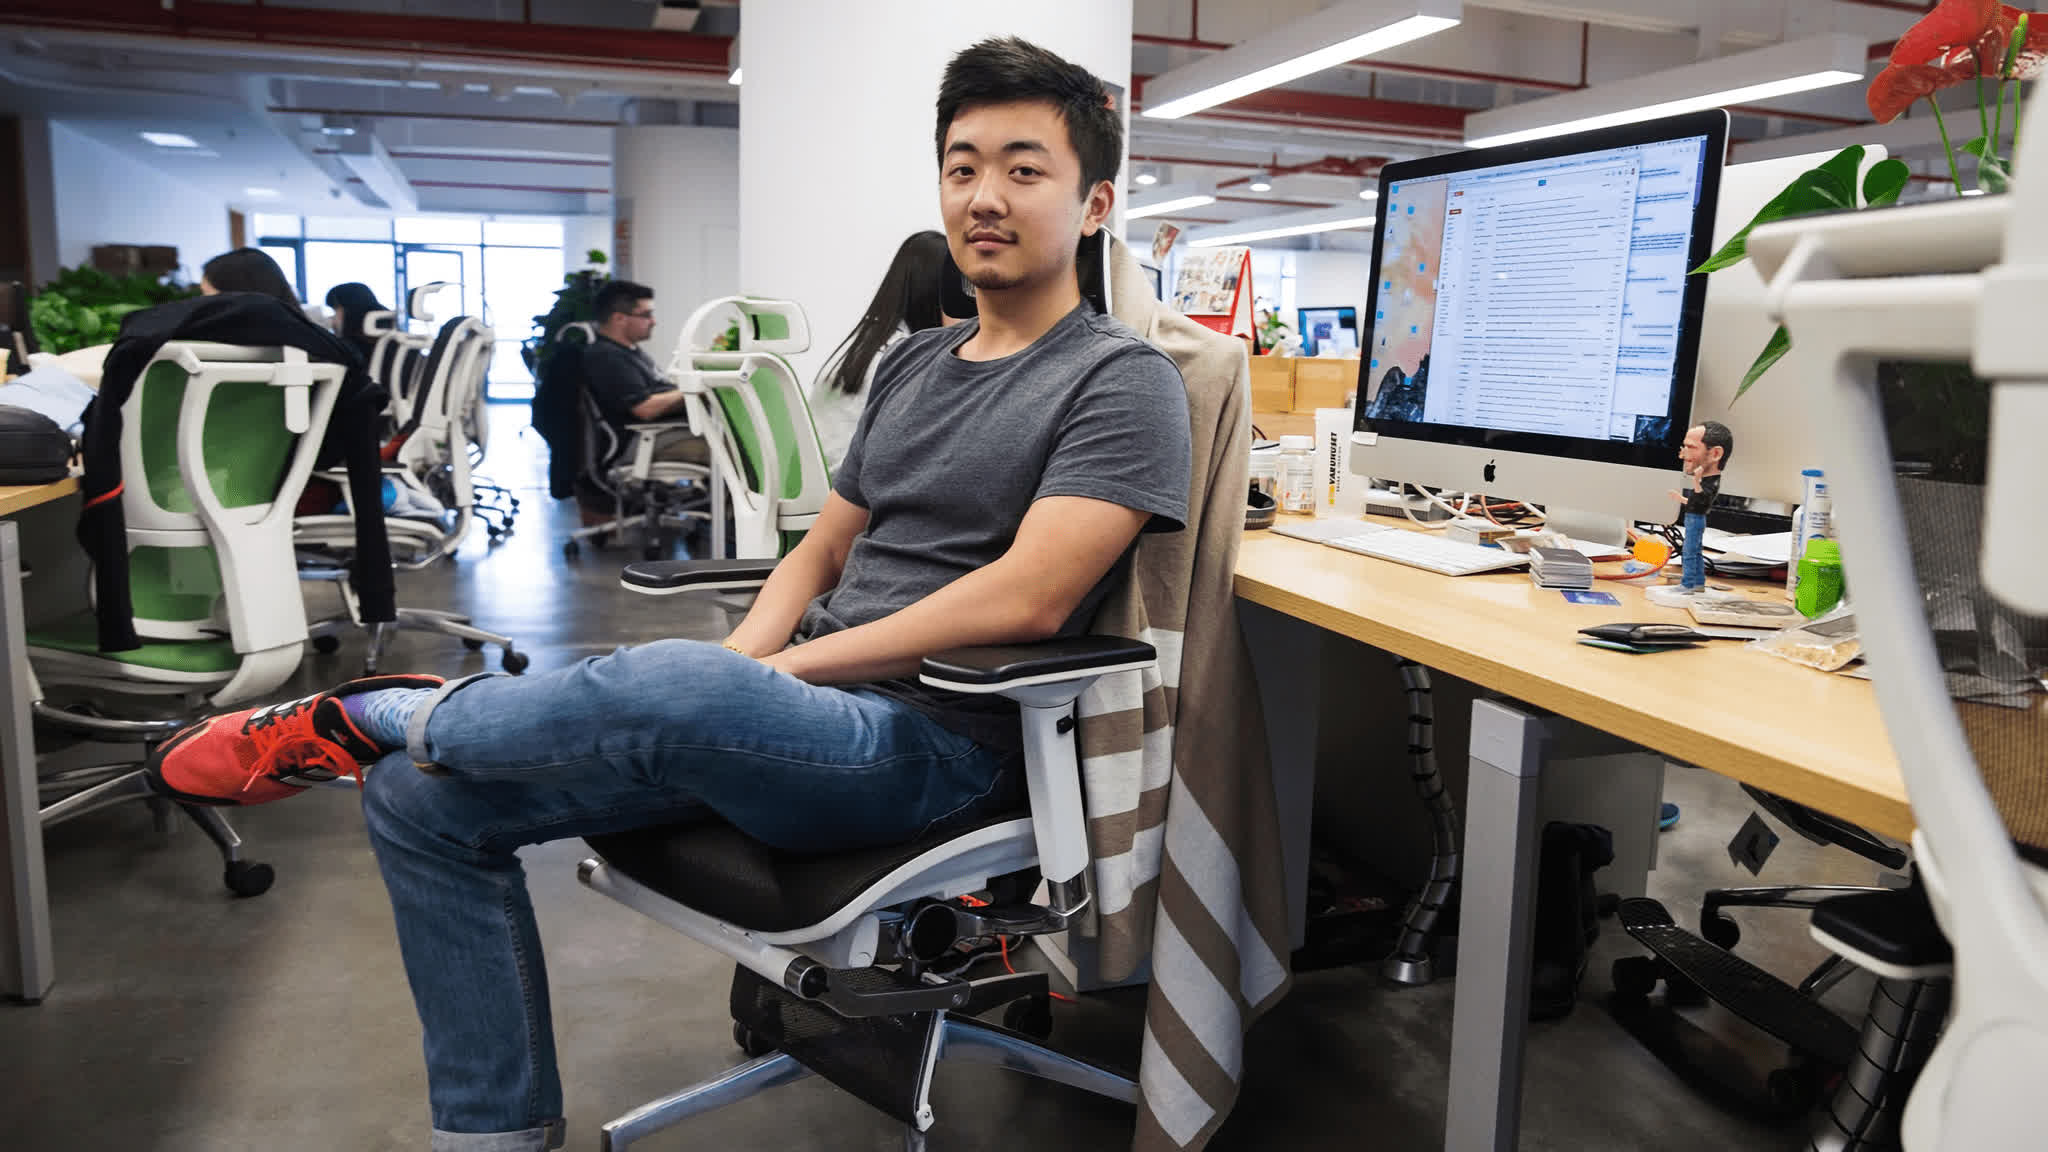 OnePlus co-founder Carl Pei has reportedly left the company to start his own venture